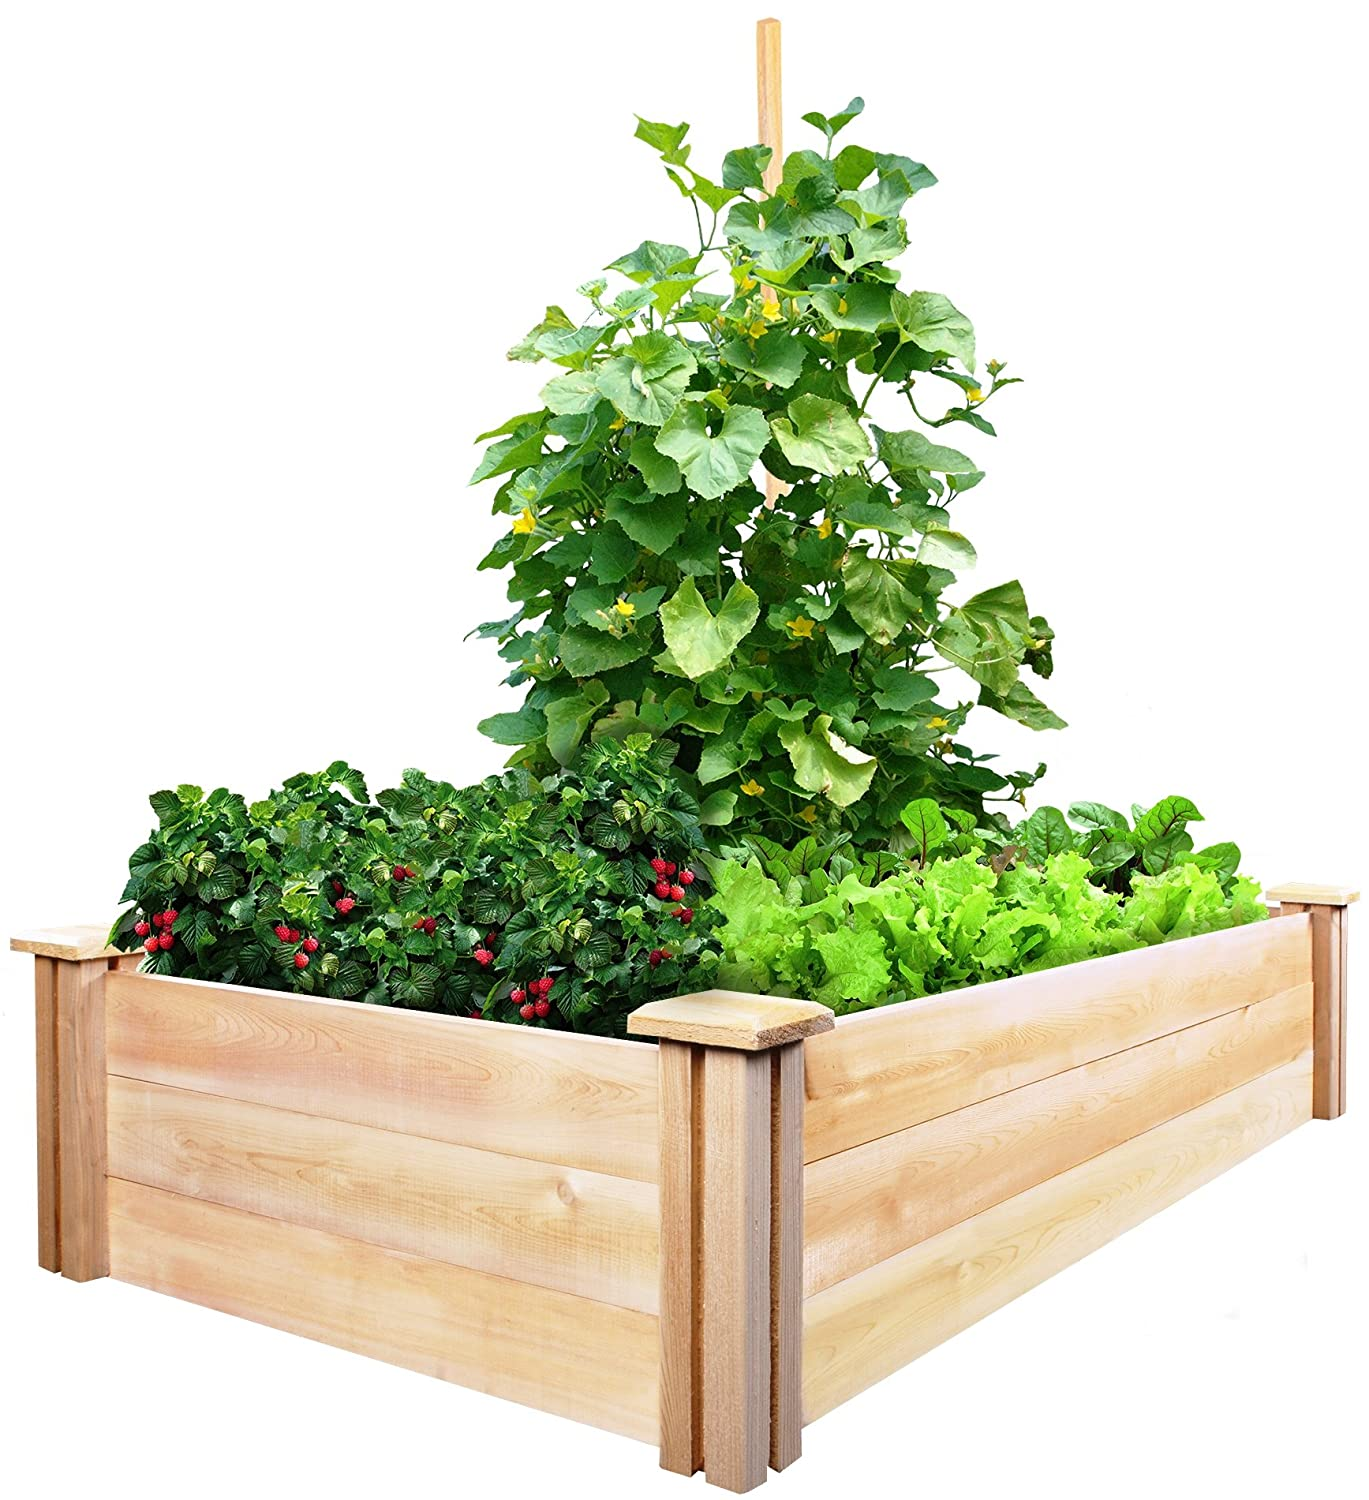 Raised Garden Bed Kits - Gift Ideas for Gardeners